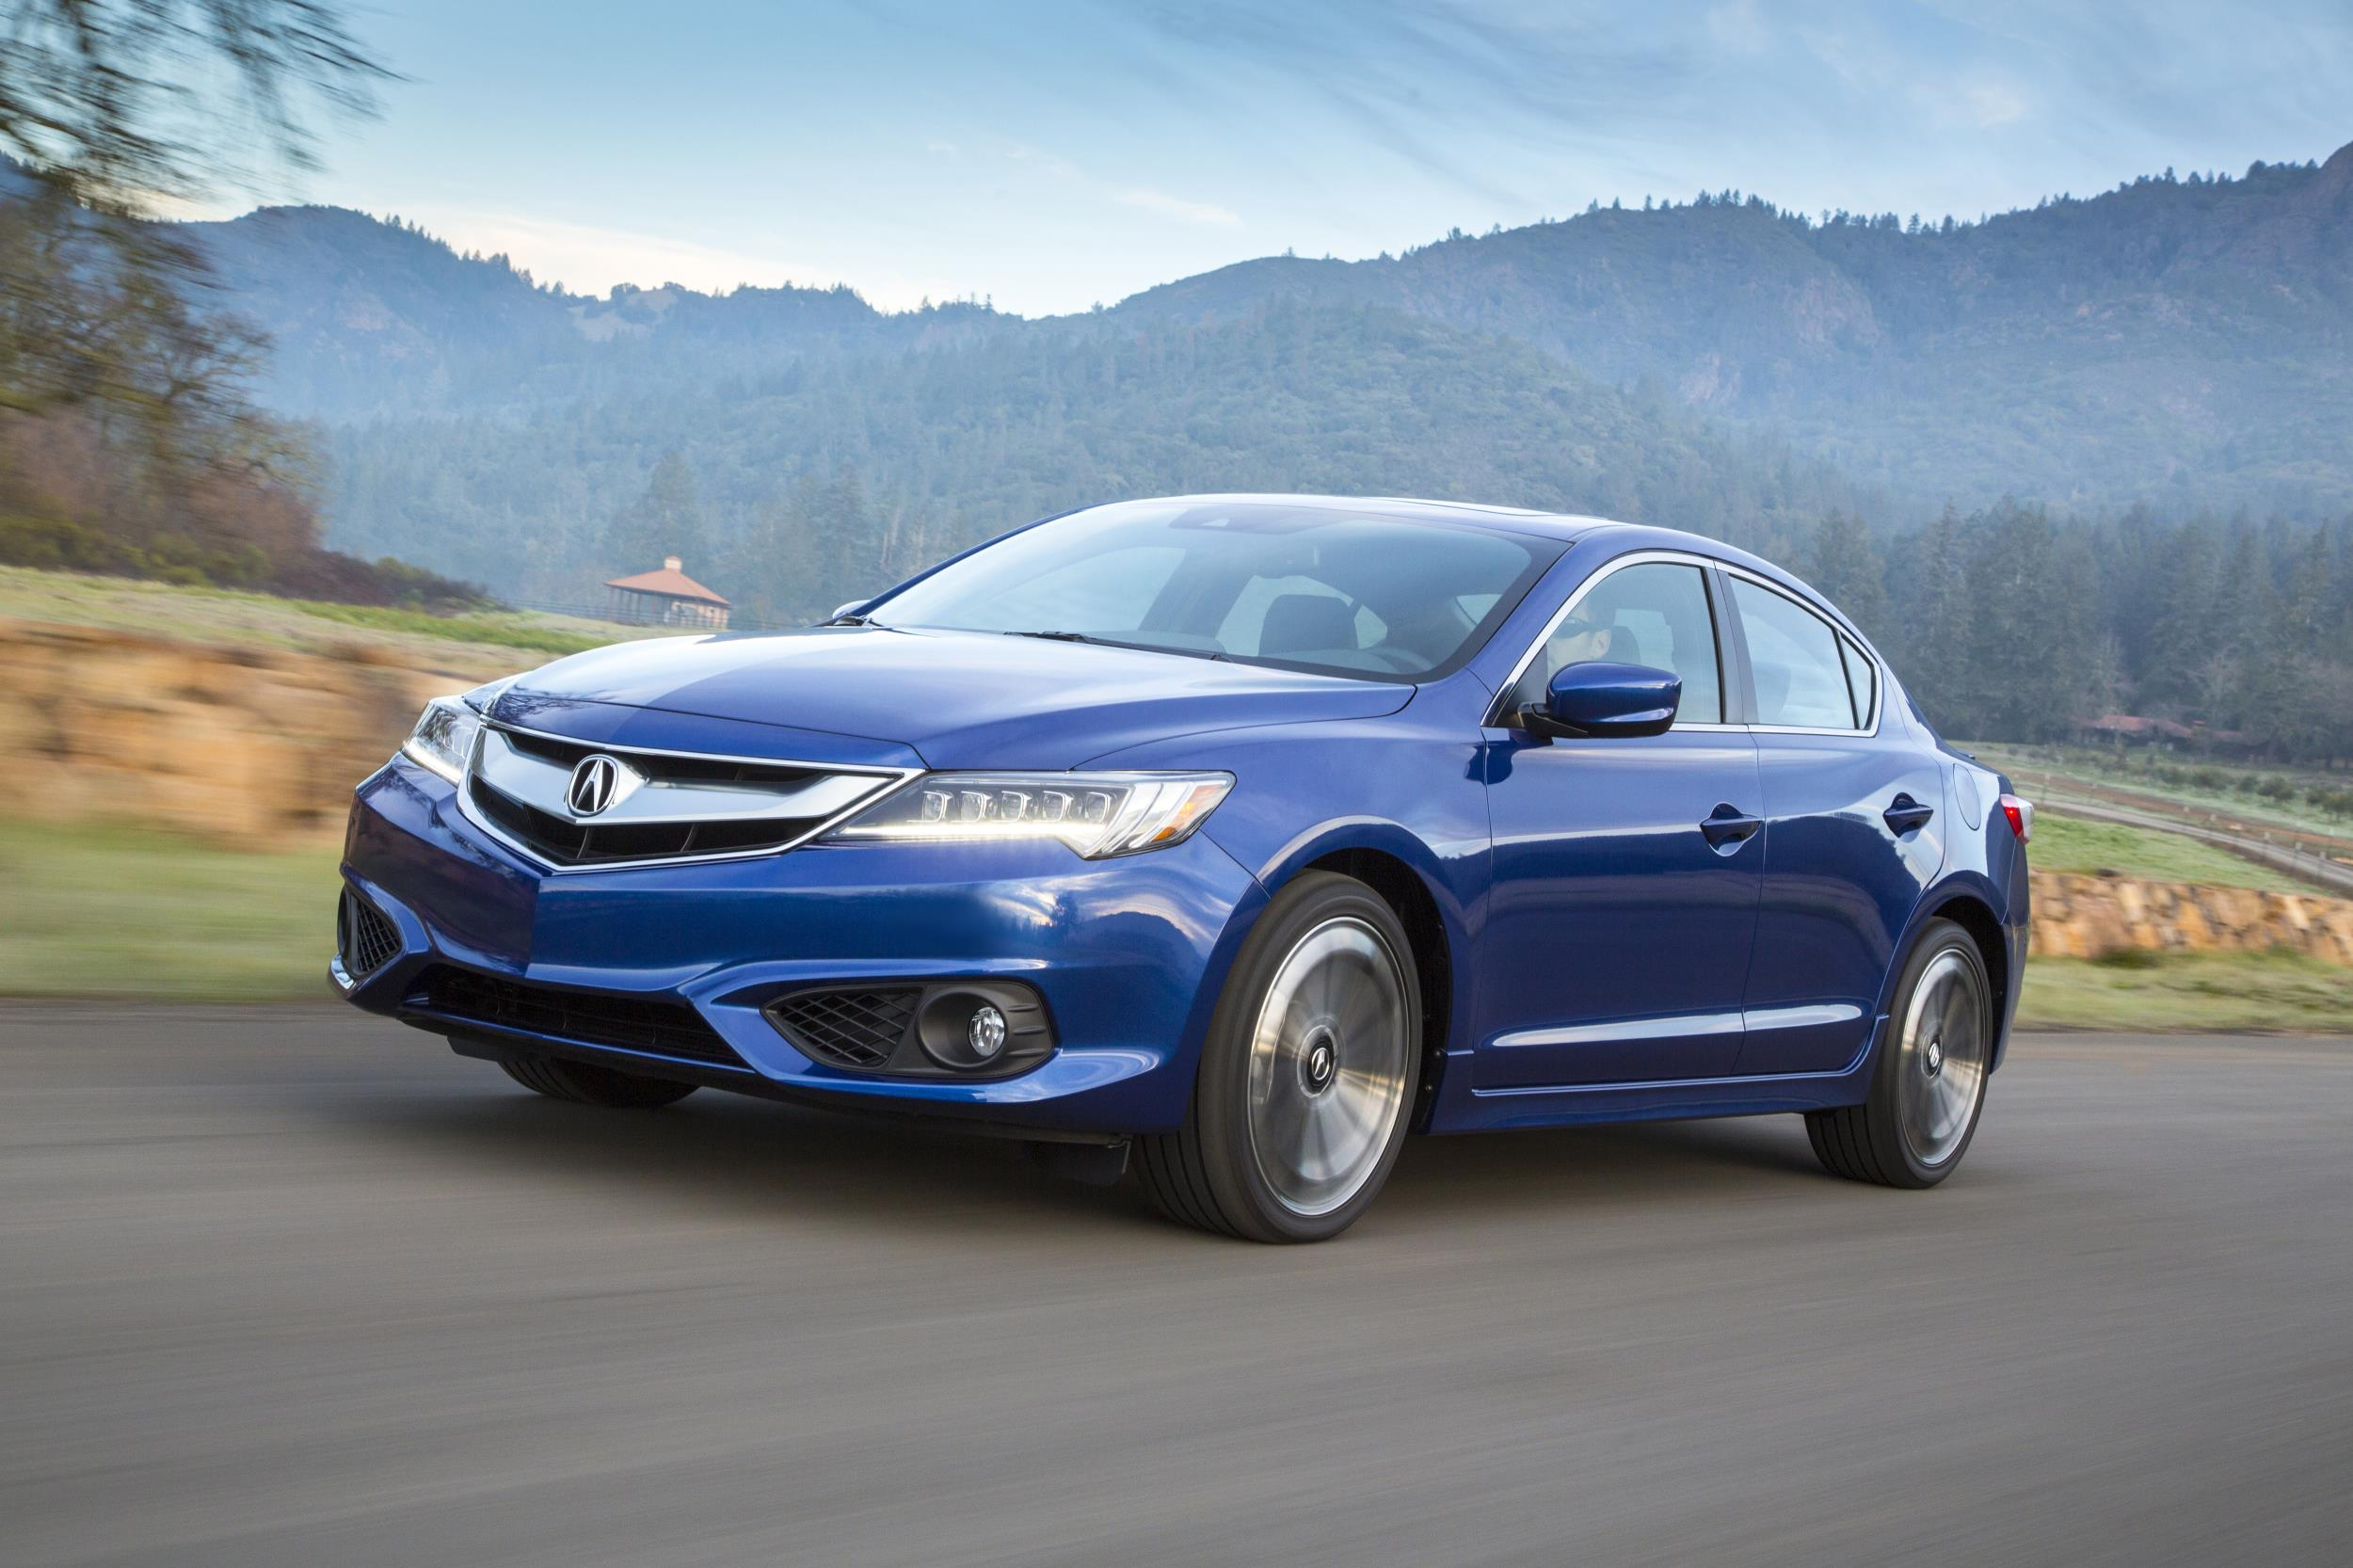 ... Acura ILX as well 2016 Acura ILX furthermore 2013 Acura ILX. on acura